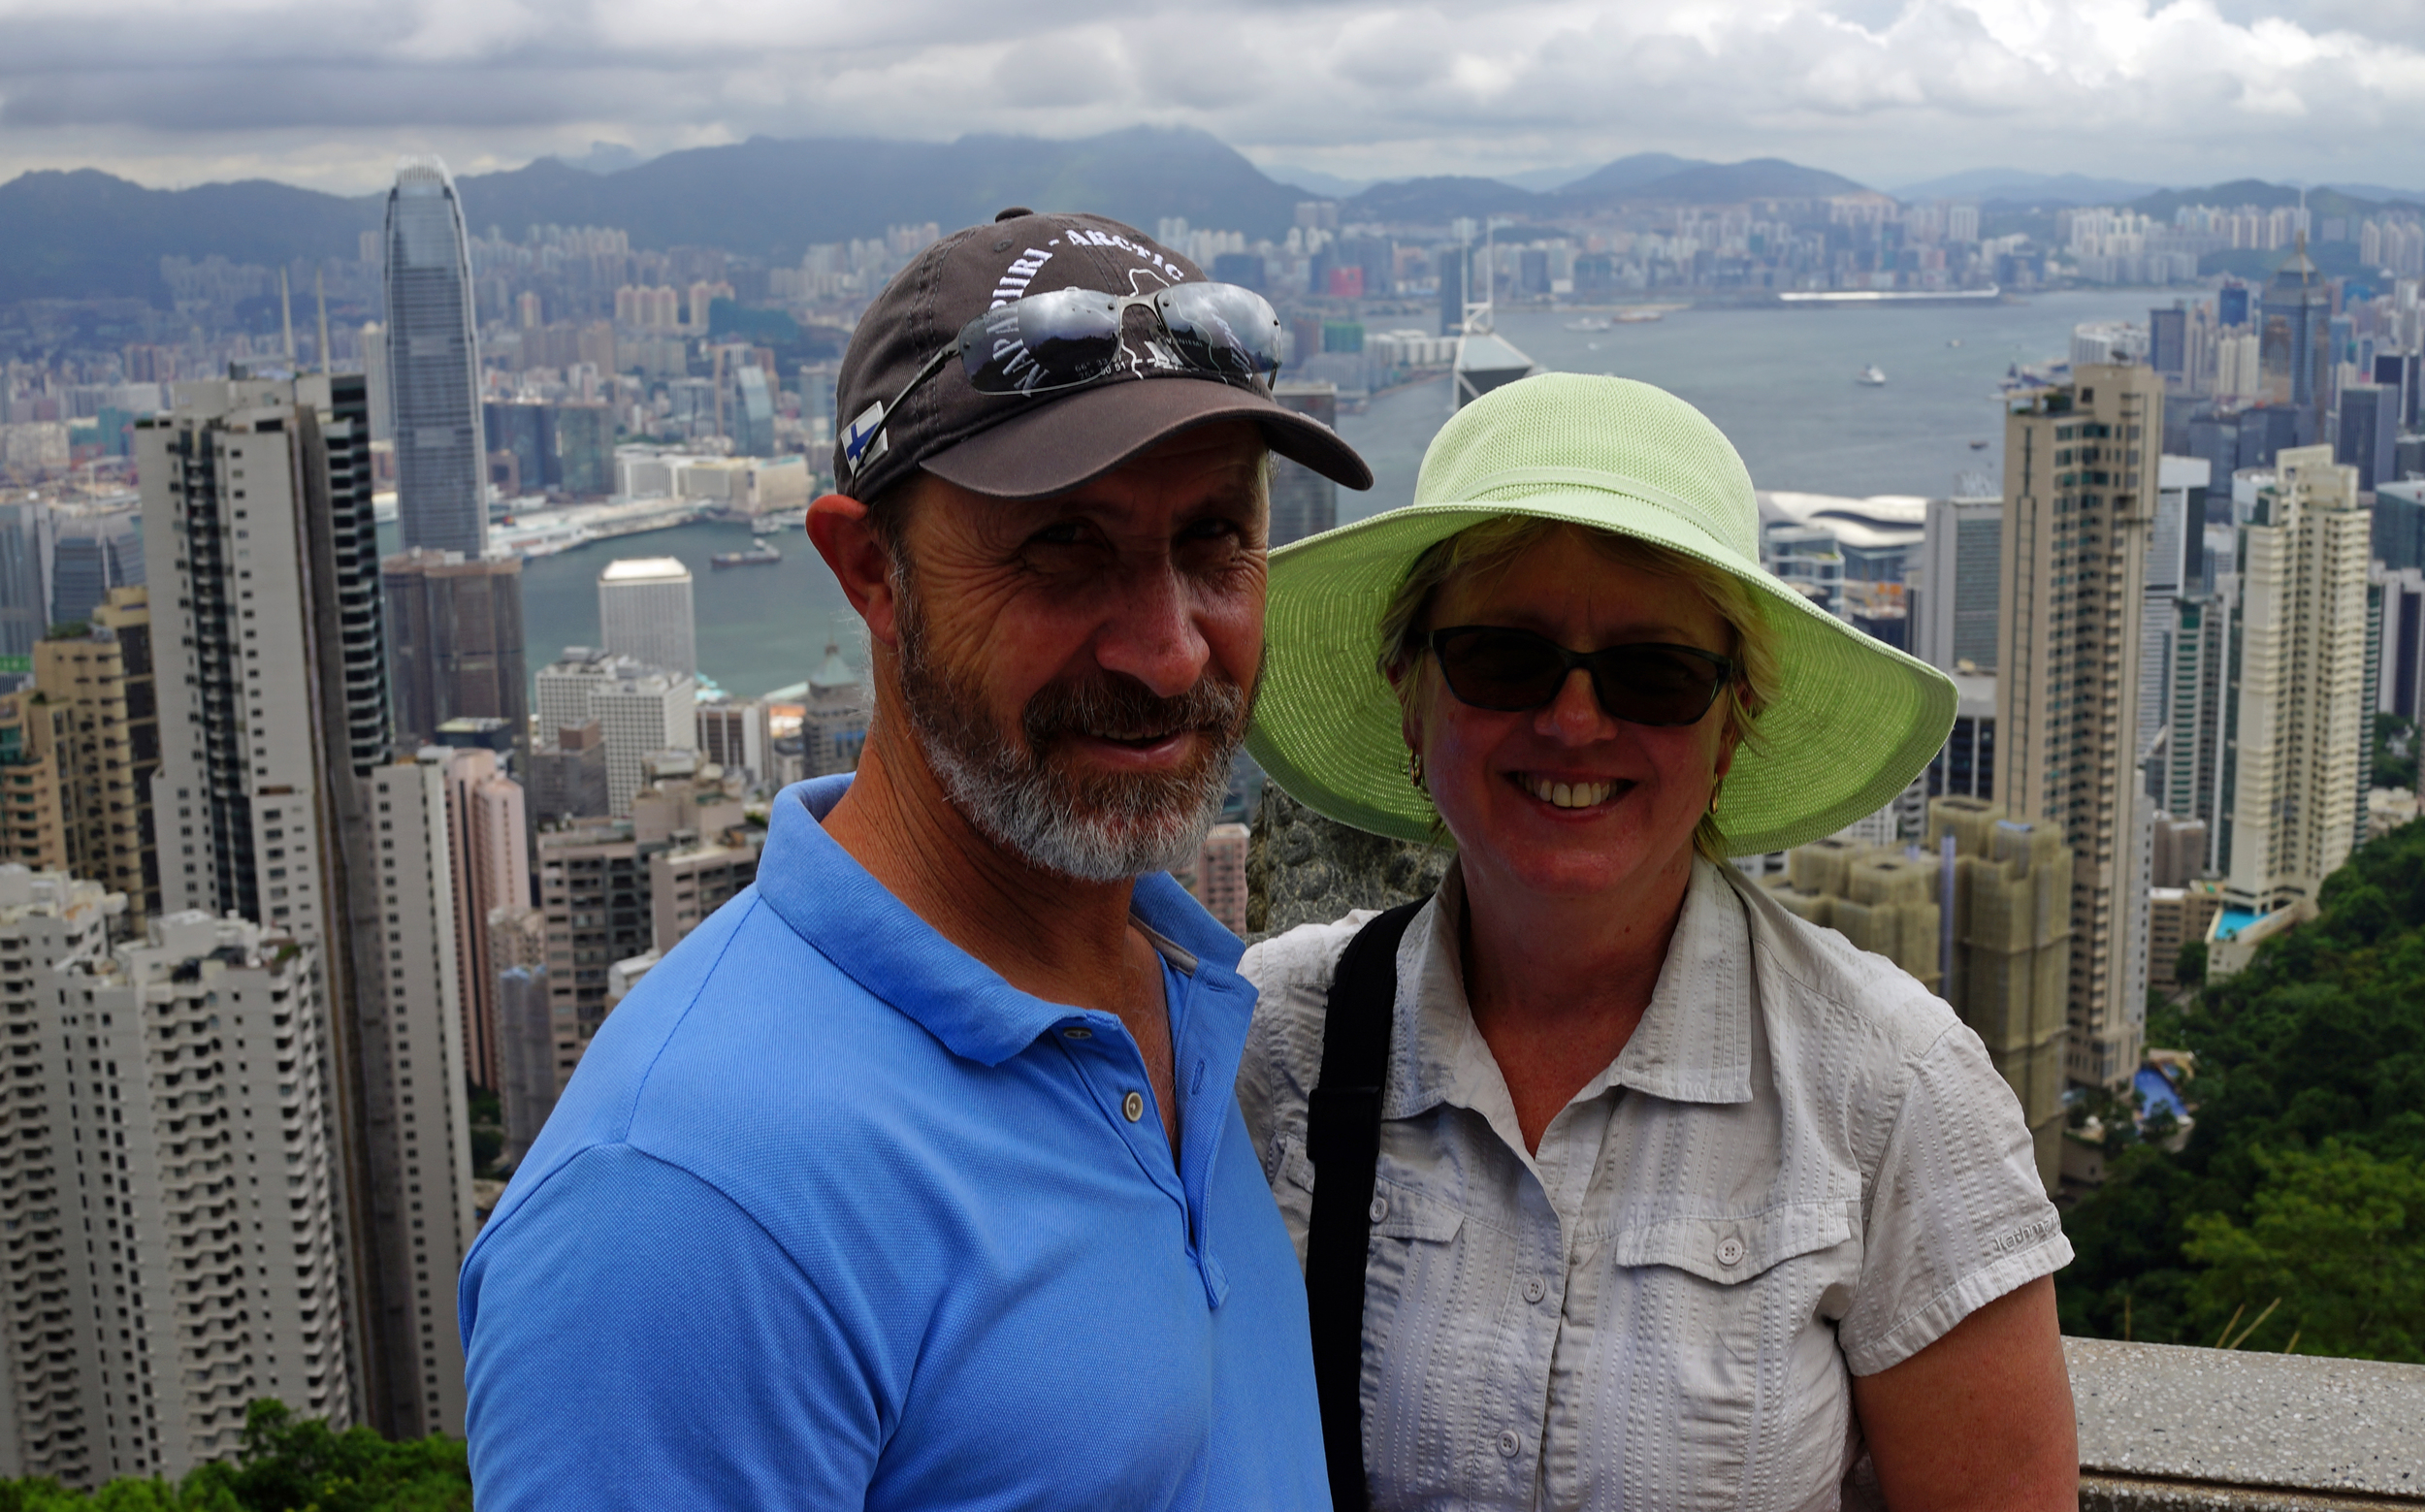 Meet Helen and Joe from Australia enjoying the fine view from the Peak Tower at Victoria Peak